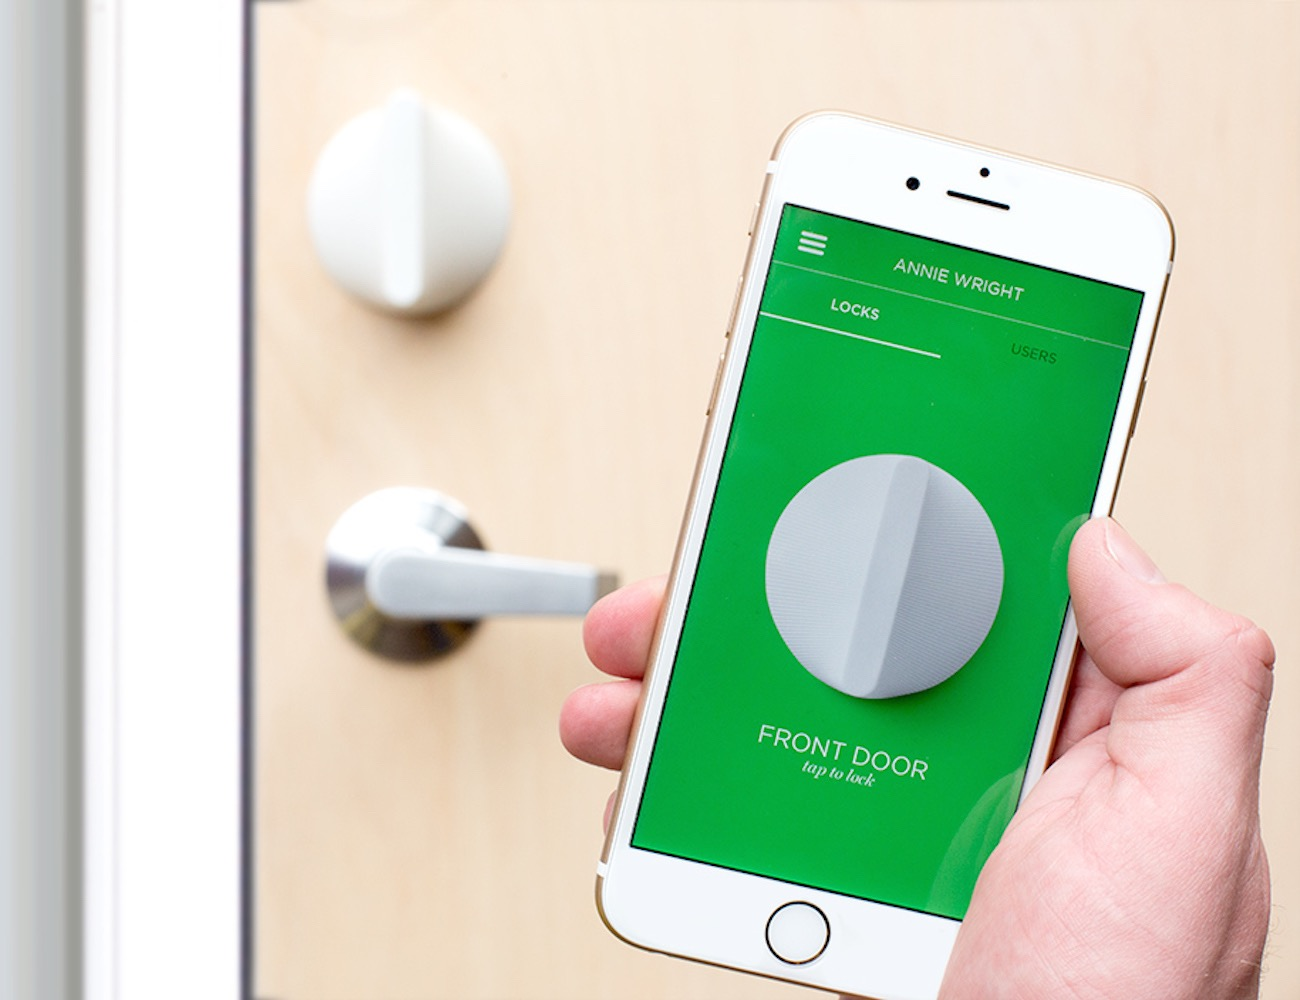 Friday Smart Lock U2013 Turn Your Phone Into Your Key